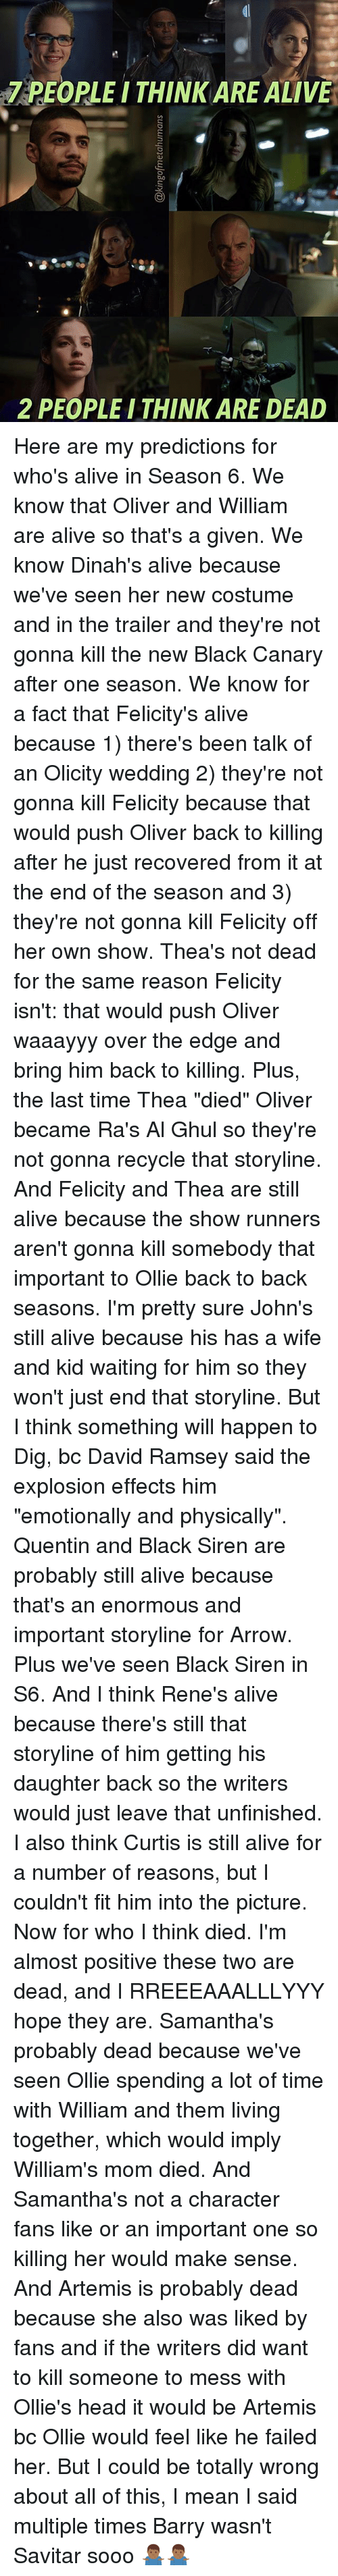 "Alive, Back to Back, and Head: PEOPLE I THINK ARE ALIVE  2 PEOPLEITHINK ARE DEAD Here are my predictions for who's alive in Season 6. We know that Oliver and William are alive so that's a given. We know Dinah's alive because we've seen her new costume and in the trailer and they're not gonna kill the new Black Canary after one season. We know for a fact that Felicity's alive because 1) there's been talk of an Olicity wedding 2) they're not gonna kill Felicity because that would push Oliver back to killing after he just recovered from it at the end of the season and 3) they're not gonna kill Felicity off her own show. Thea's not dead for the same reason Felicity isn't: that would push Oliver waaayyy over the edge and bring him back to killing. Plus, the last time Thea ""died"" Oliver became Ra's Al Ghul so they're not gonna recycle that storyline. And Felicity and Thea are still alive because the show runners aren't gonna kill somebody that important to Ollie back to back seasons. I'm pretty sure John's still alive because his has a wife and kid waiting for him so they won't just end that storyline. But I think something will happen to Dig, bc David Ramsey said the explosion effects him ""emotionally and physically"". Quentin and Black Siren are probably still alive because that's an enormous and important storyline for Arrow. Plus we've seen Black Siren in S6. And I think Rene's alive because there's still that storyline of him getting his daughter back so the writers would just leave that unfinished. I also think Curtis is still alive for a number of reasons, but I couldn't fit him into the picture. Now for who I think died. I'm almost positive these two are dead, and I RREEEAAALLLYYY hope they are. Samantha's probably dead because we've seen Ollie spending a lot of time with William and them living together, which would imply William's mom died. And Samantha's not a character fans like or an important one so killing her would make sense. And Artemis is probably dead because she also was liked by fans and if the writers did want to kill someone to mess with Ollie's head it would be Artemis bc Ollie would feel like he failed her. But I could be totally wrong about all of this, I mean I said multiple times Barry wasn't Savitar sooo 🤷🏾‍♂️🤷🏾‍♂️"